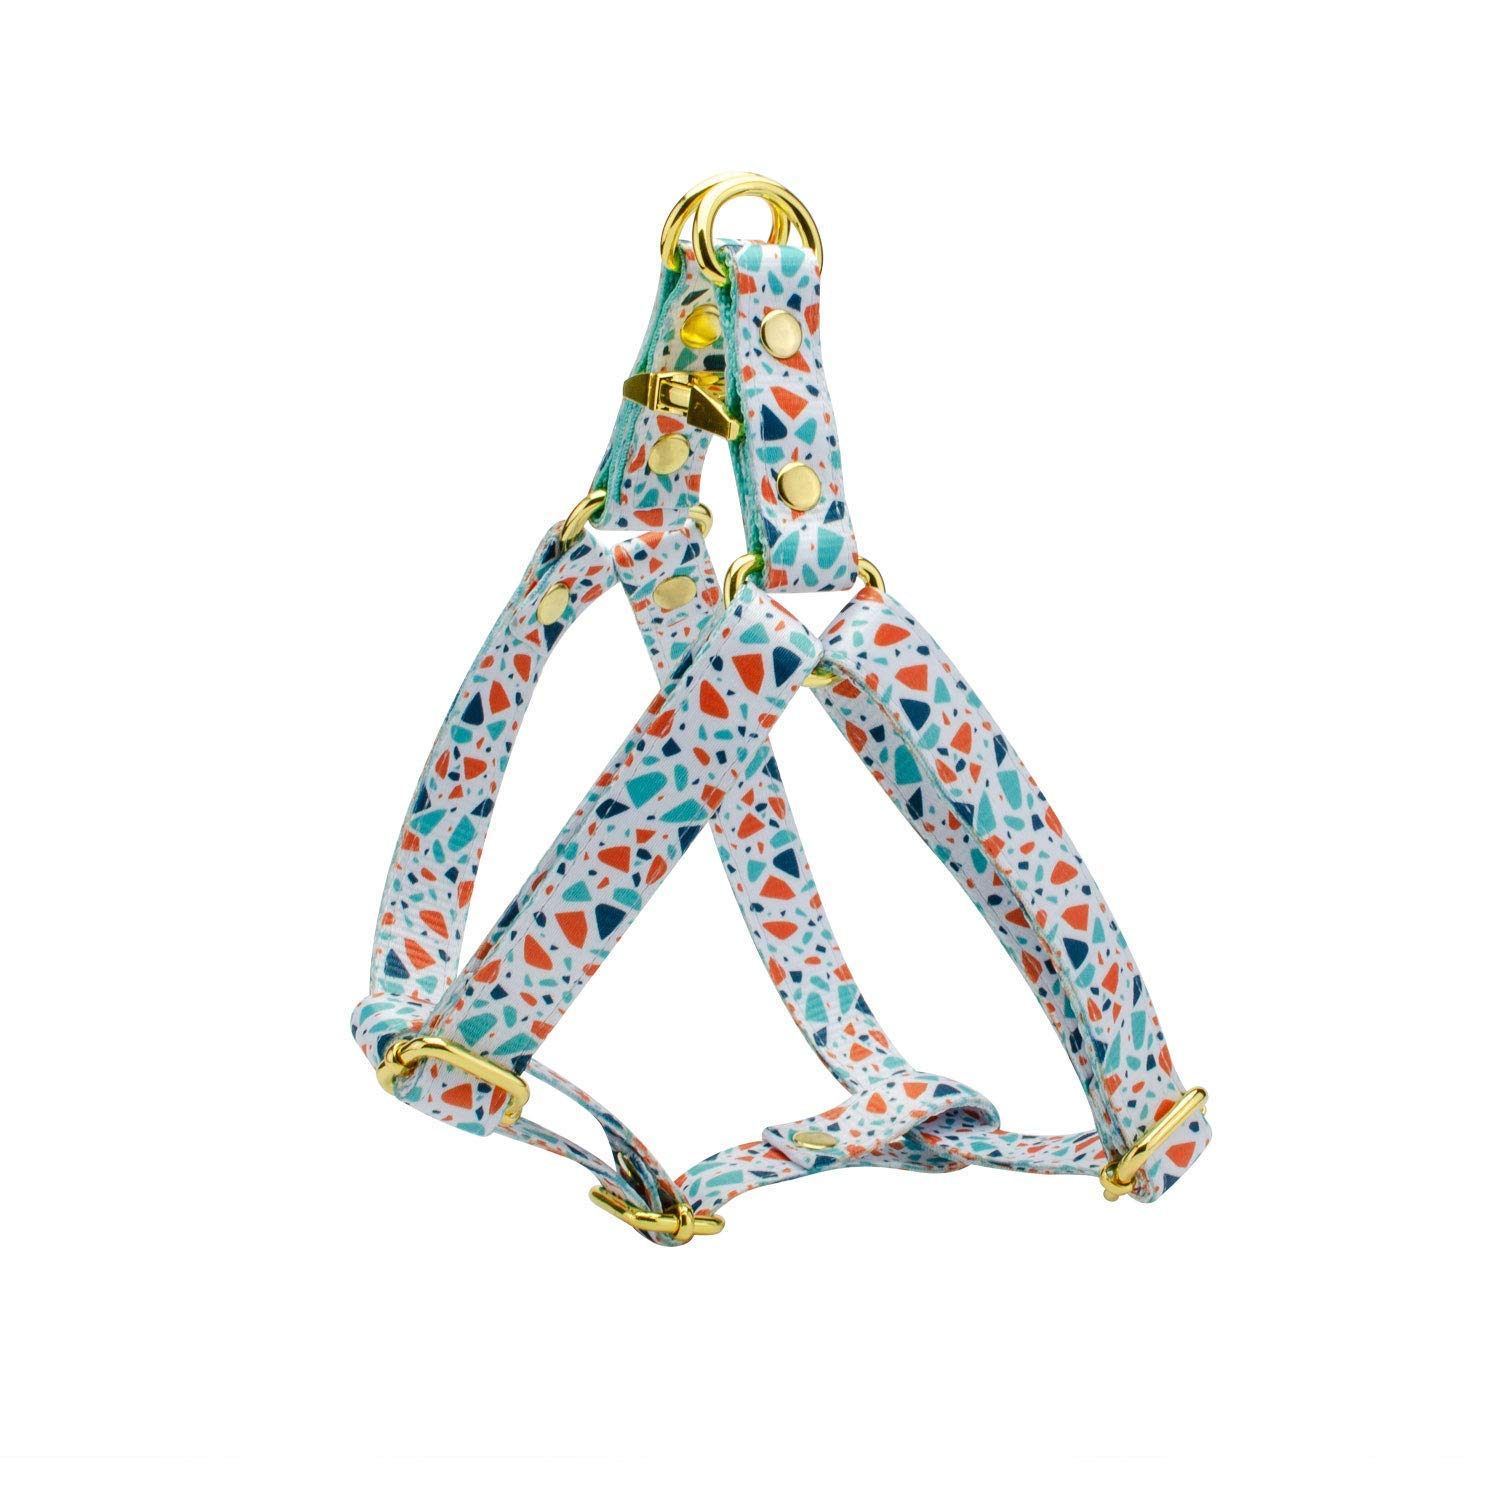 Elegant Terrazzo Print Dog Step In Harness and Leash Set, Adjustable with Gold Metal Hardware - Handmade Designer Harnesses for X-Small, Medium, X-Large Dogs